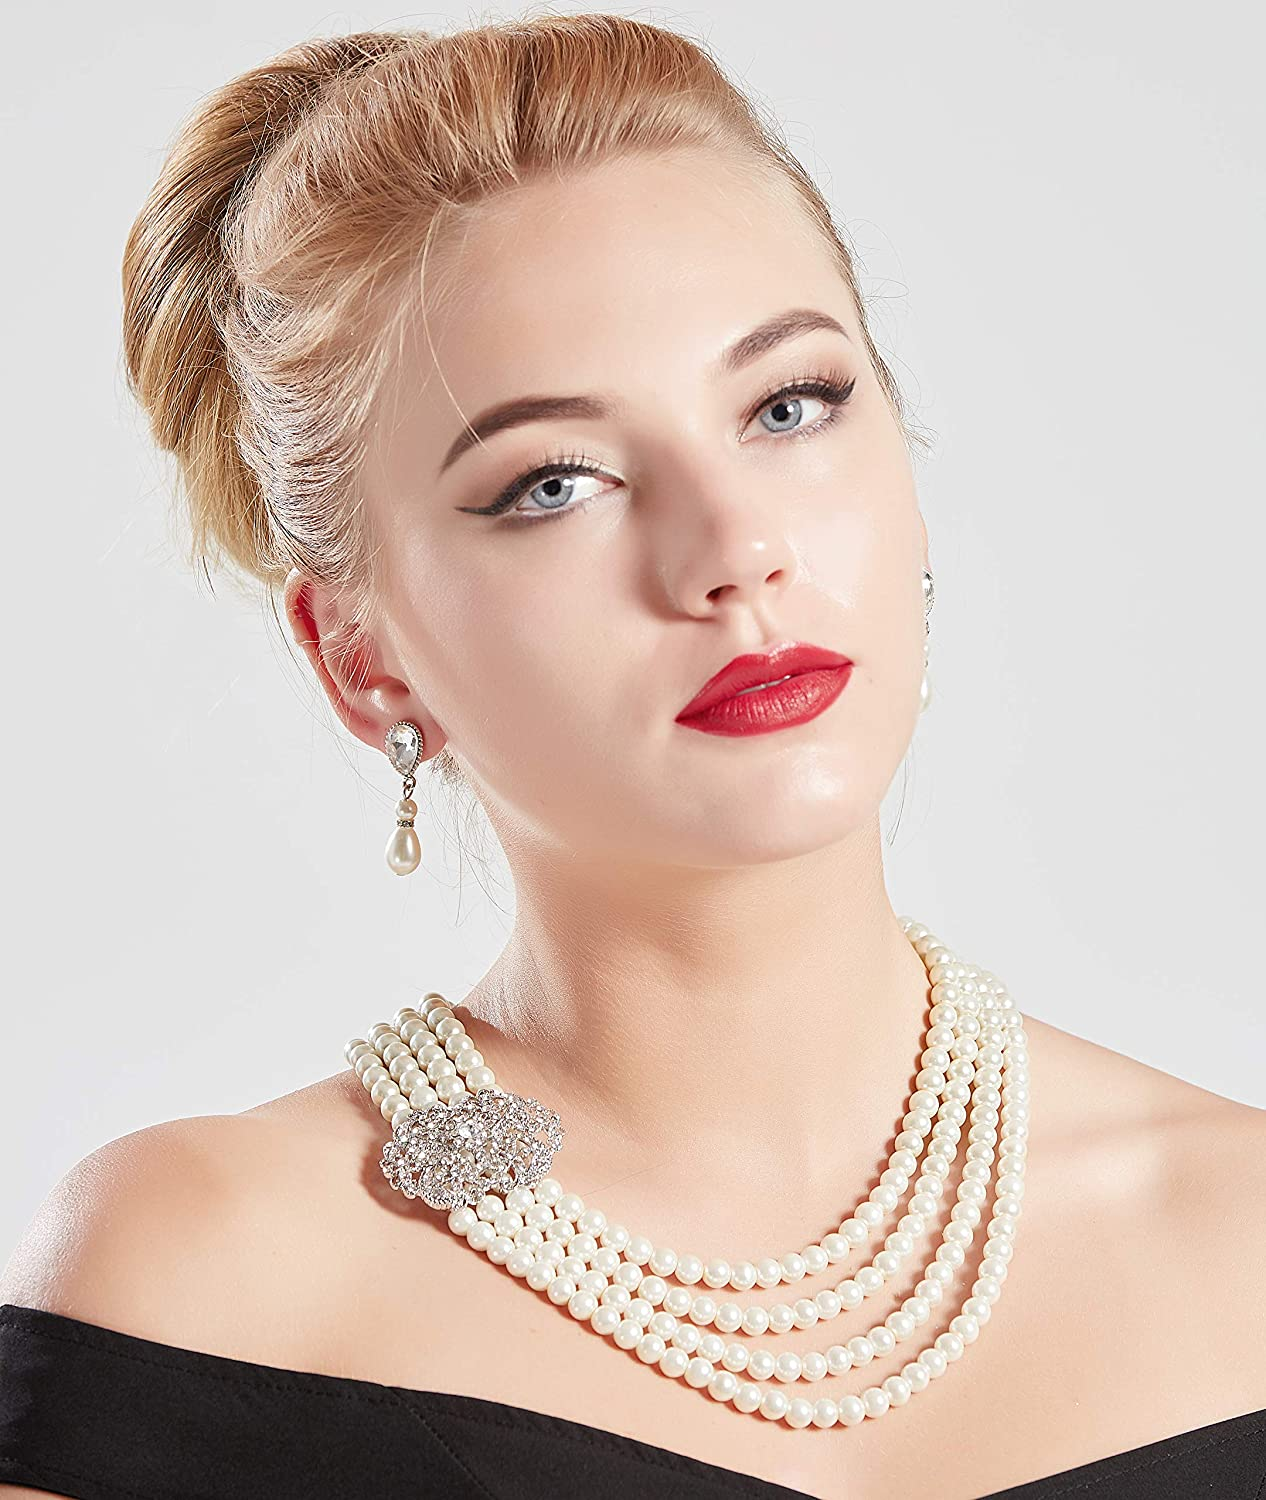 1940s Costume Jewelry: Necklaces, Earrings, Brooch, Bracelets BABEYOND 1920s Gatsby Pearl Necklace Vintage Bridal Pearl Necklace Earrings Jewelry Set Multilayer Imitation Pearl Necklace with Brooch $19.99 AT vintagedancer.com